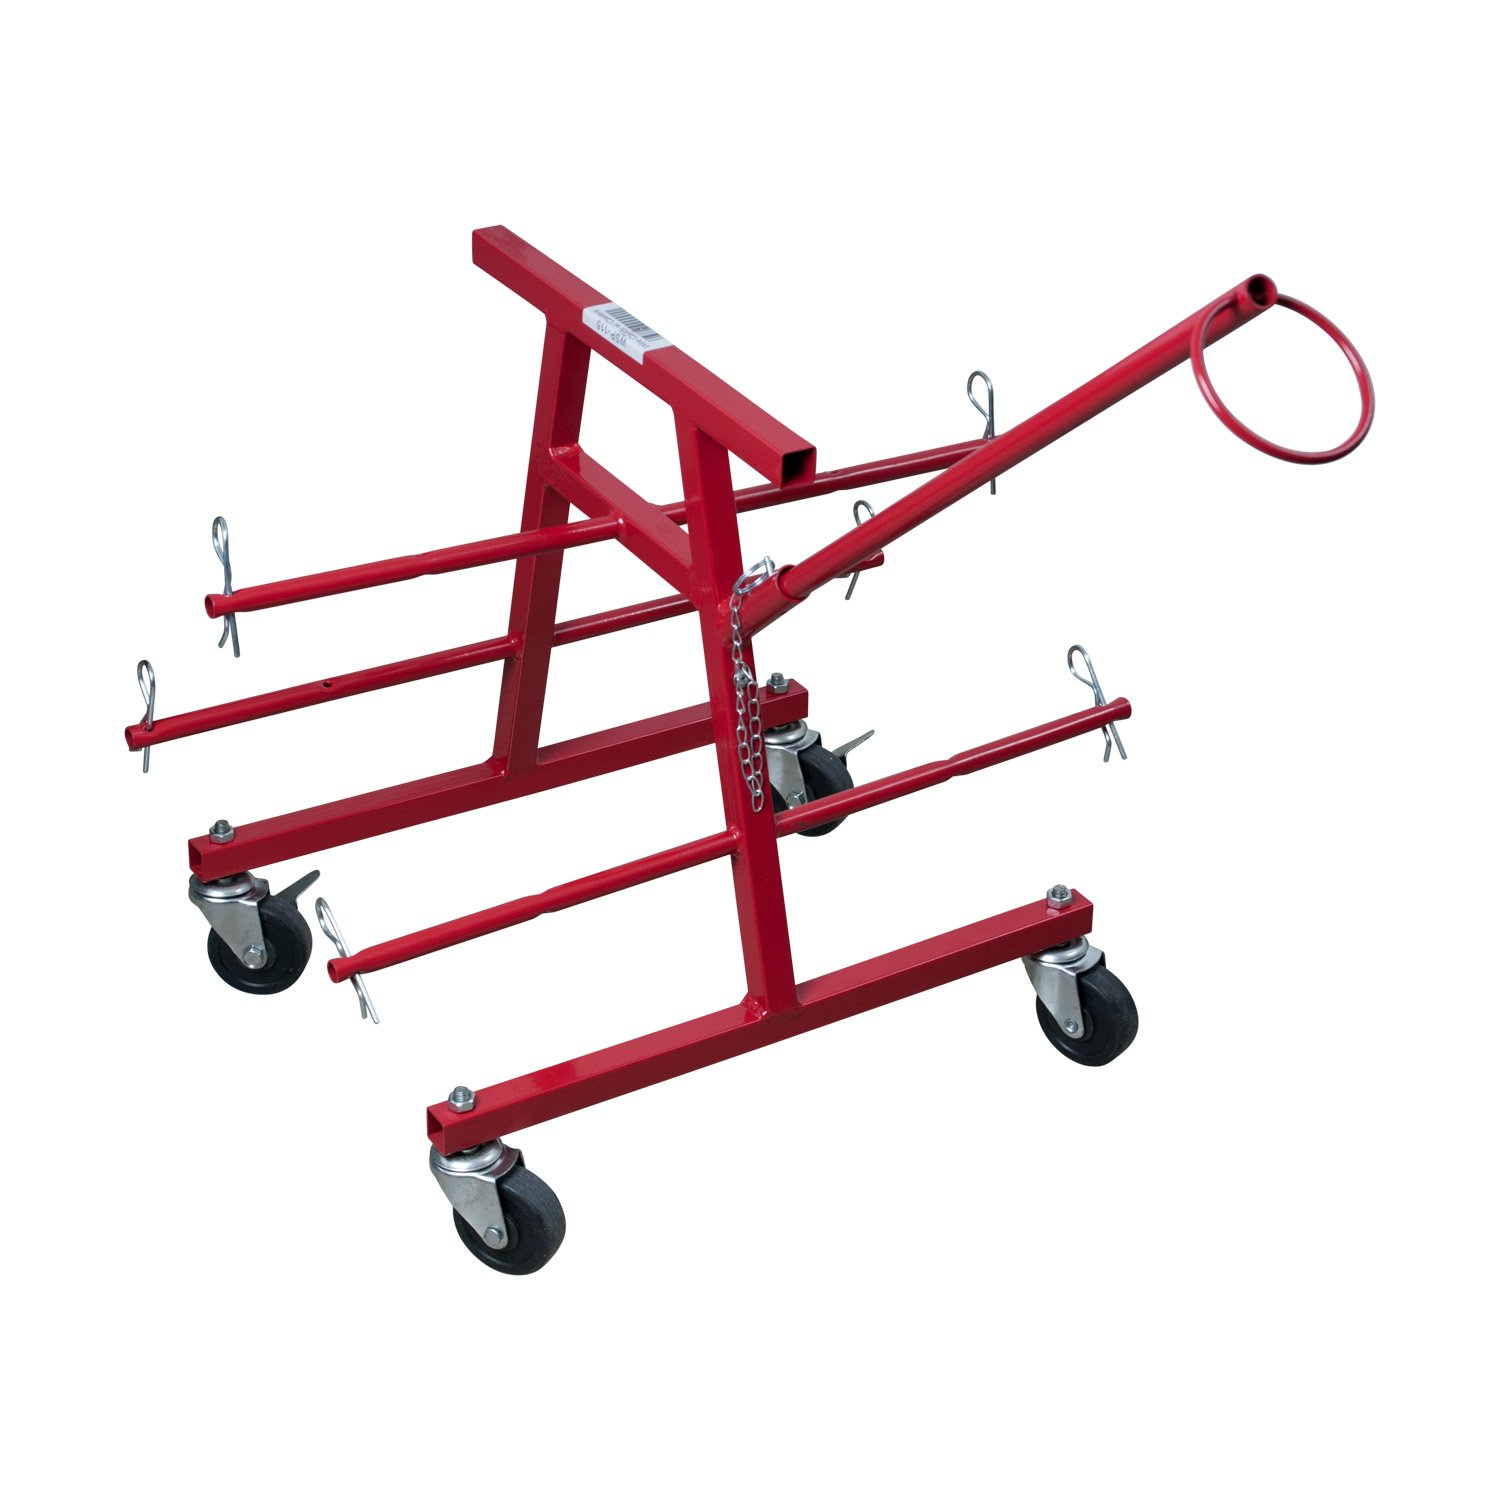 Gardner Bender WSP-115 Portable Electrical Wire Caddy w/ Casters, Dispenses 6 500 Ft. Spools, 10-6 Wire Gauge (AWG) or 12 7 Inch. X 5 Inch Wire Reels, Red